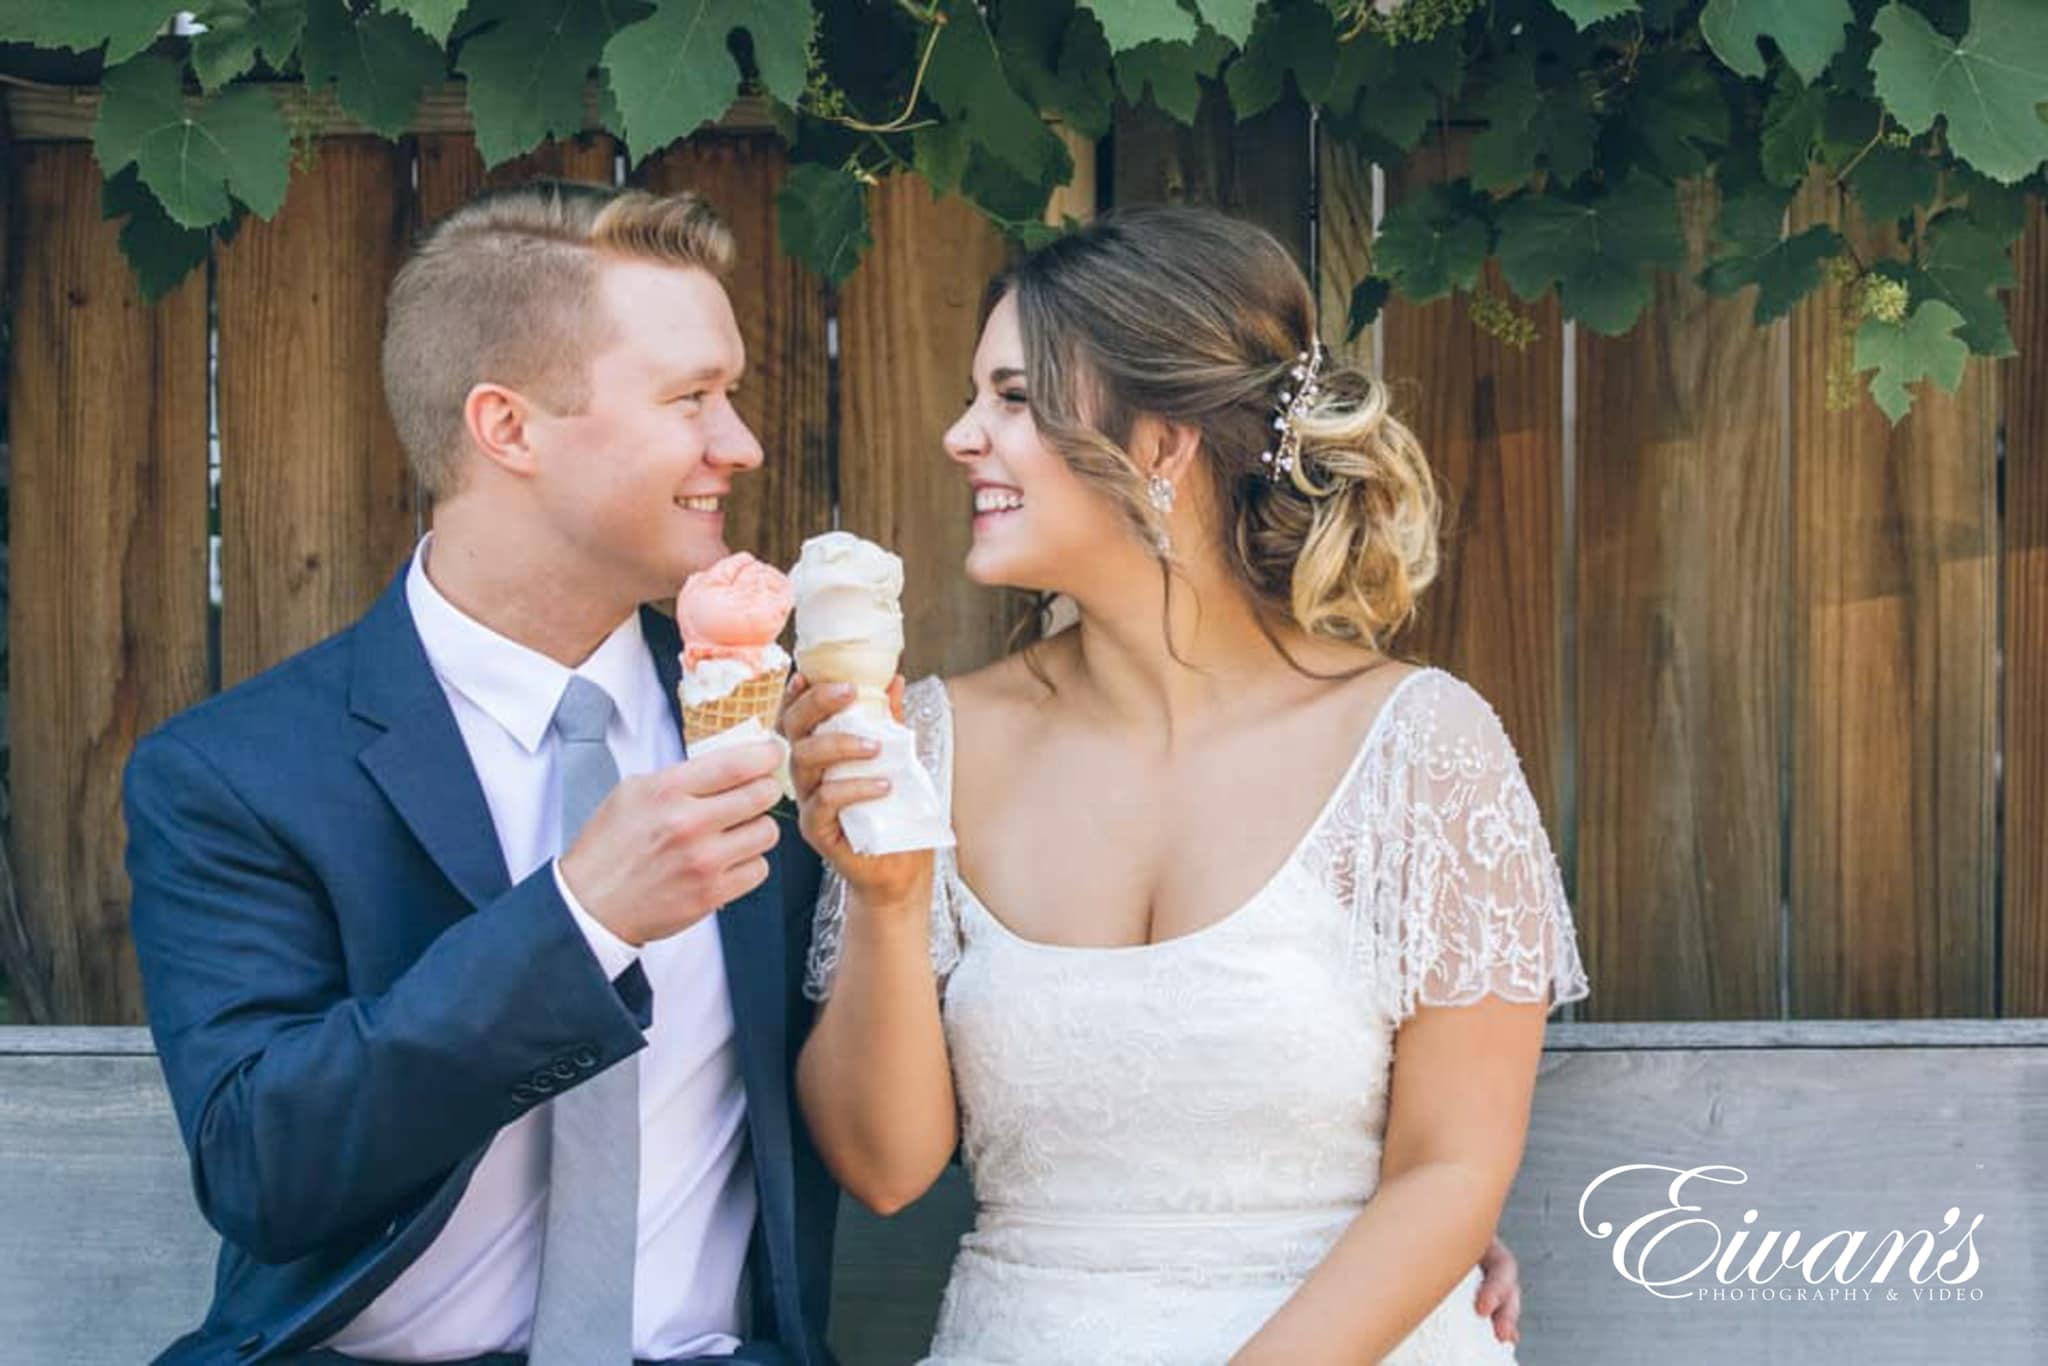 image of a bride and groom cheering to ice cream